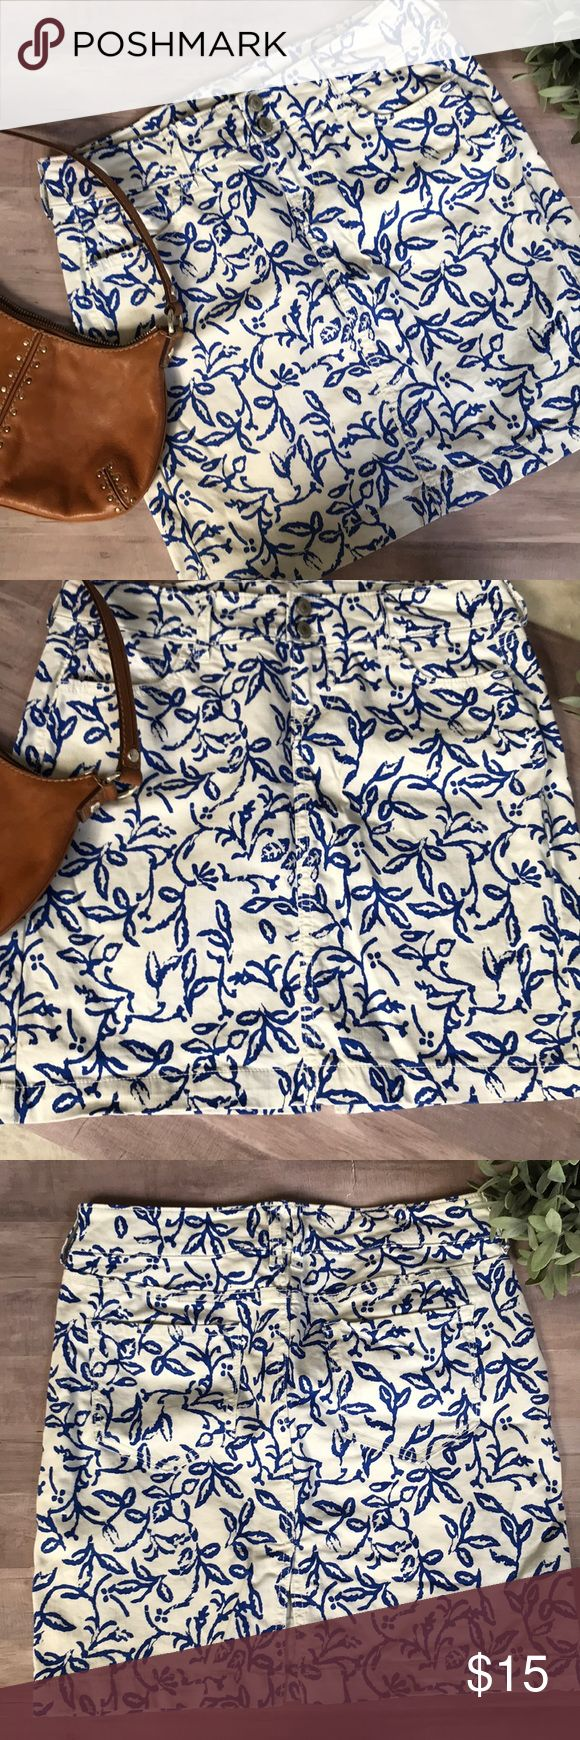 Denim Skirt Cute Old Navy super stretch denim skirt, white with blue floral pattern size 6 Petite  Waist is 29 length is 17, this is very stretchy and has pockets in the front and back Old Navy Skirts Midi